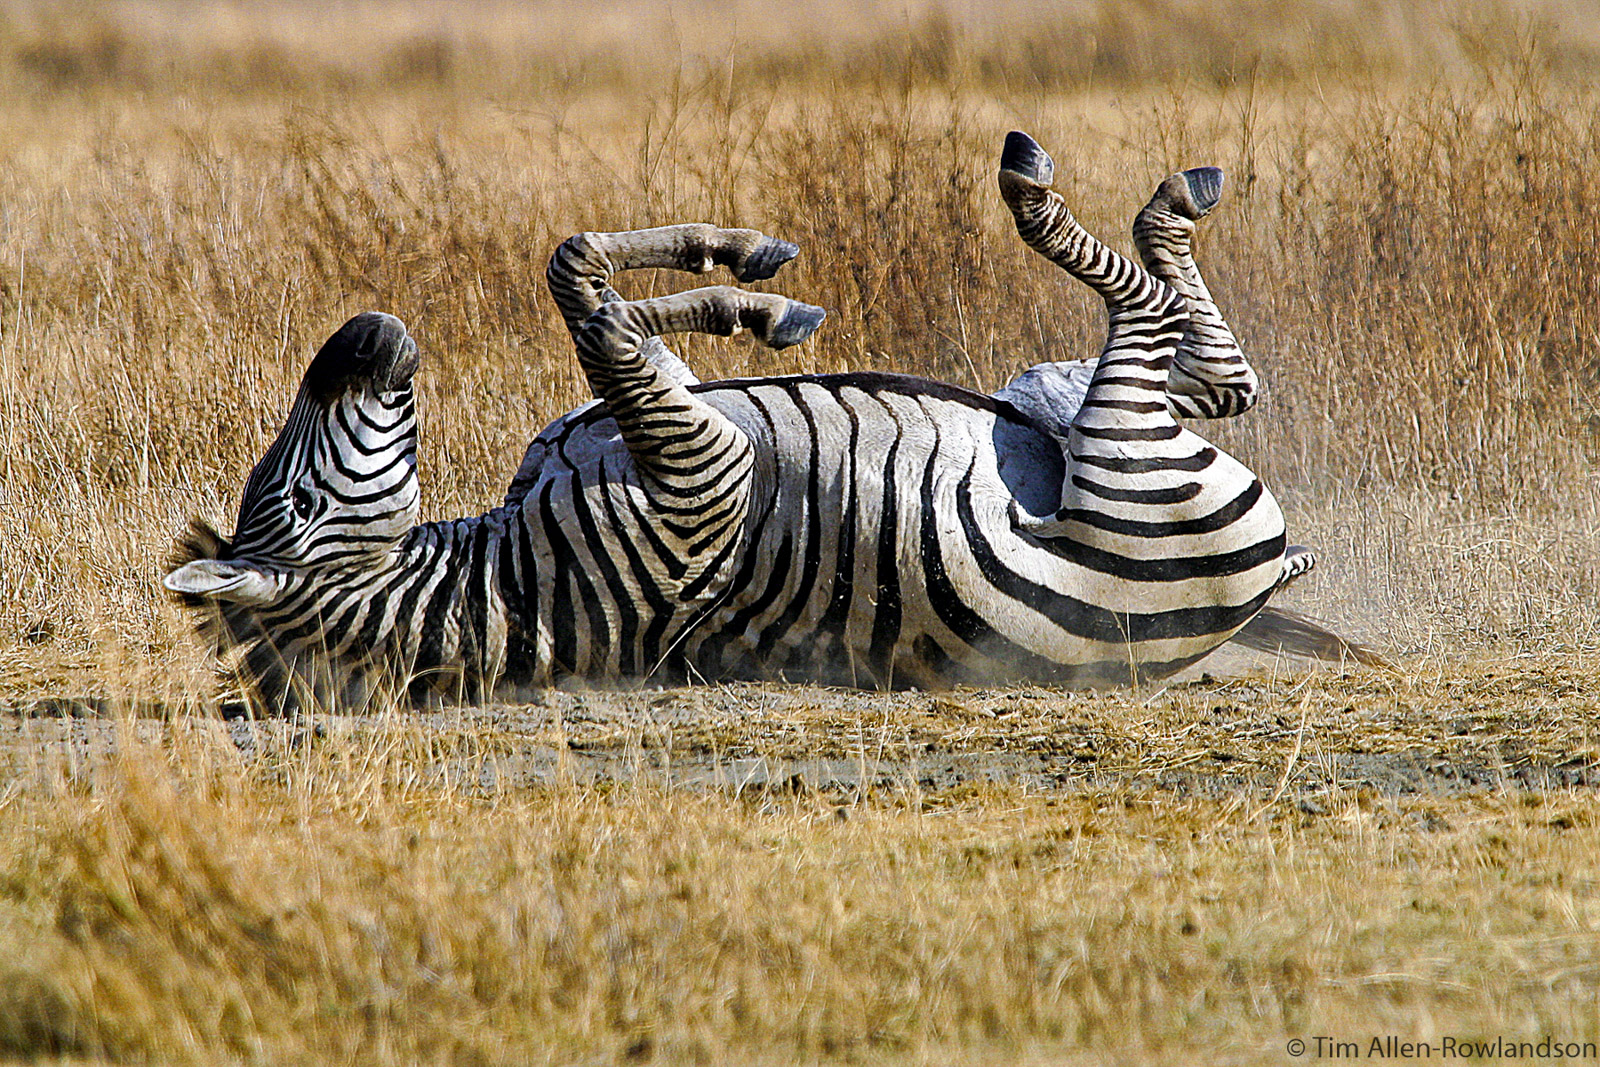 Zebra dustbathing in the Ngorongoro Crater, Tanzania. Zebra often have specific places where they roll in the dust, and there is often a waiting line where the order depends on social rank.